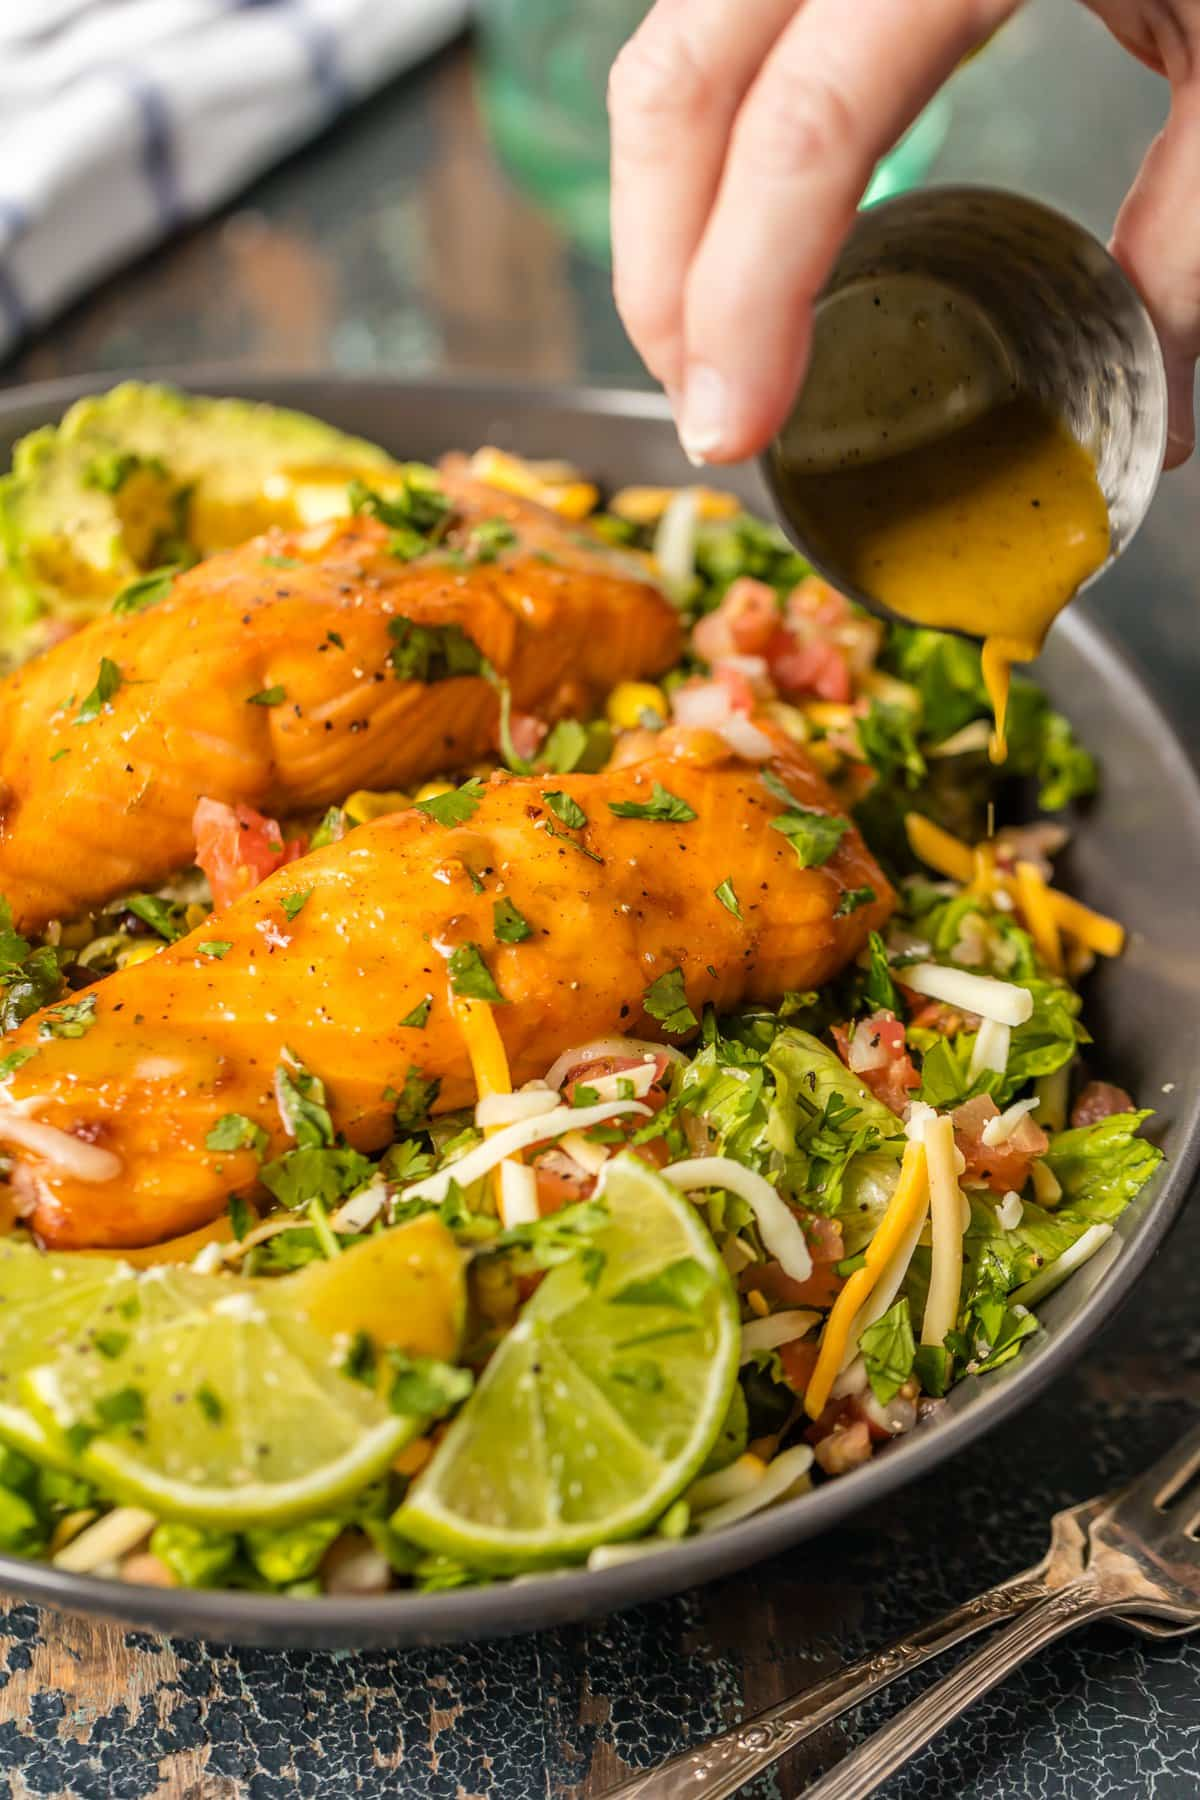 Salmon salad recipe with tomatoes, cheese, black beans, avocado, and more